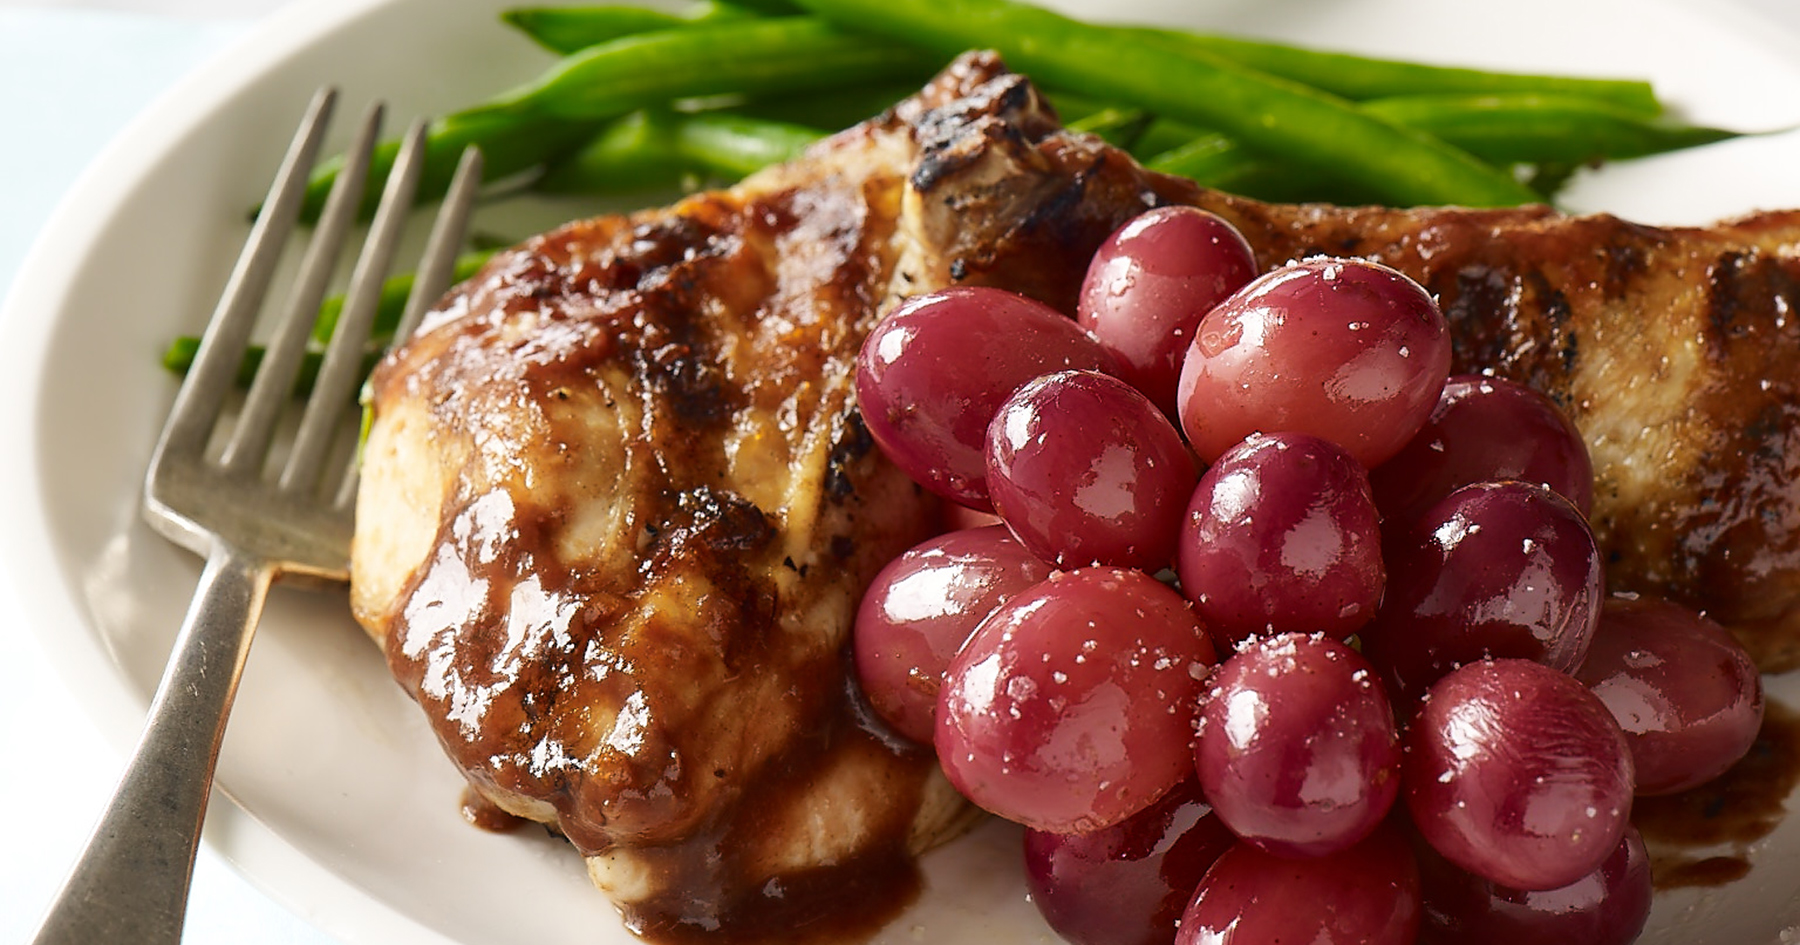 Grilled Chicken With Red Grape-Tamarind Barbecue Sauce